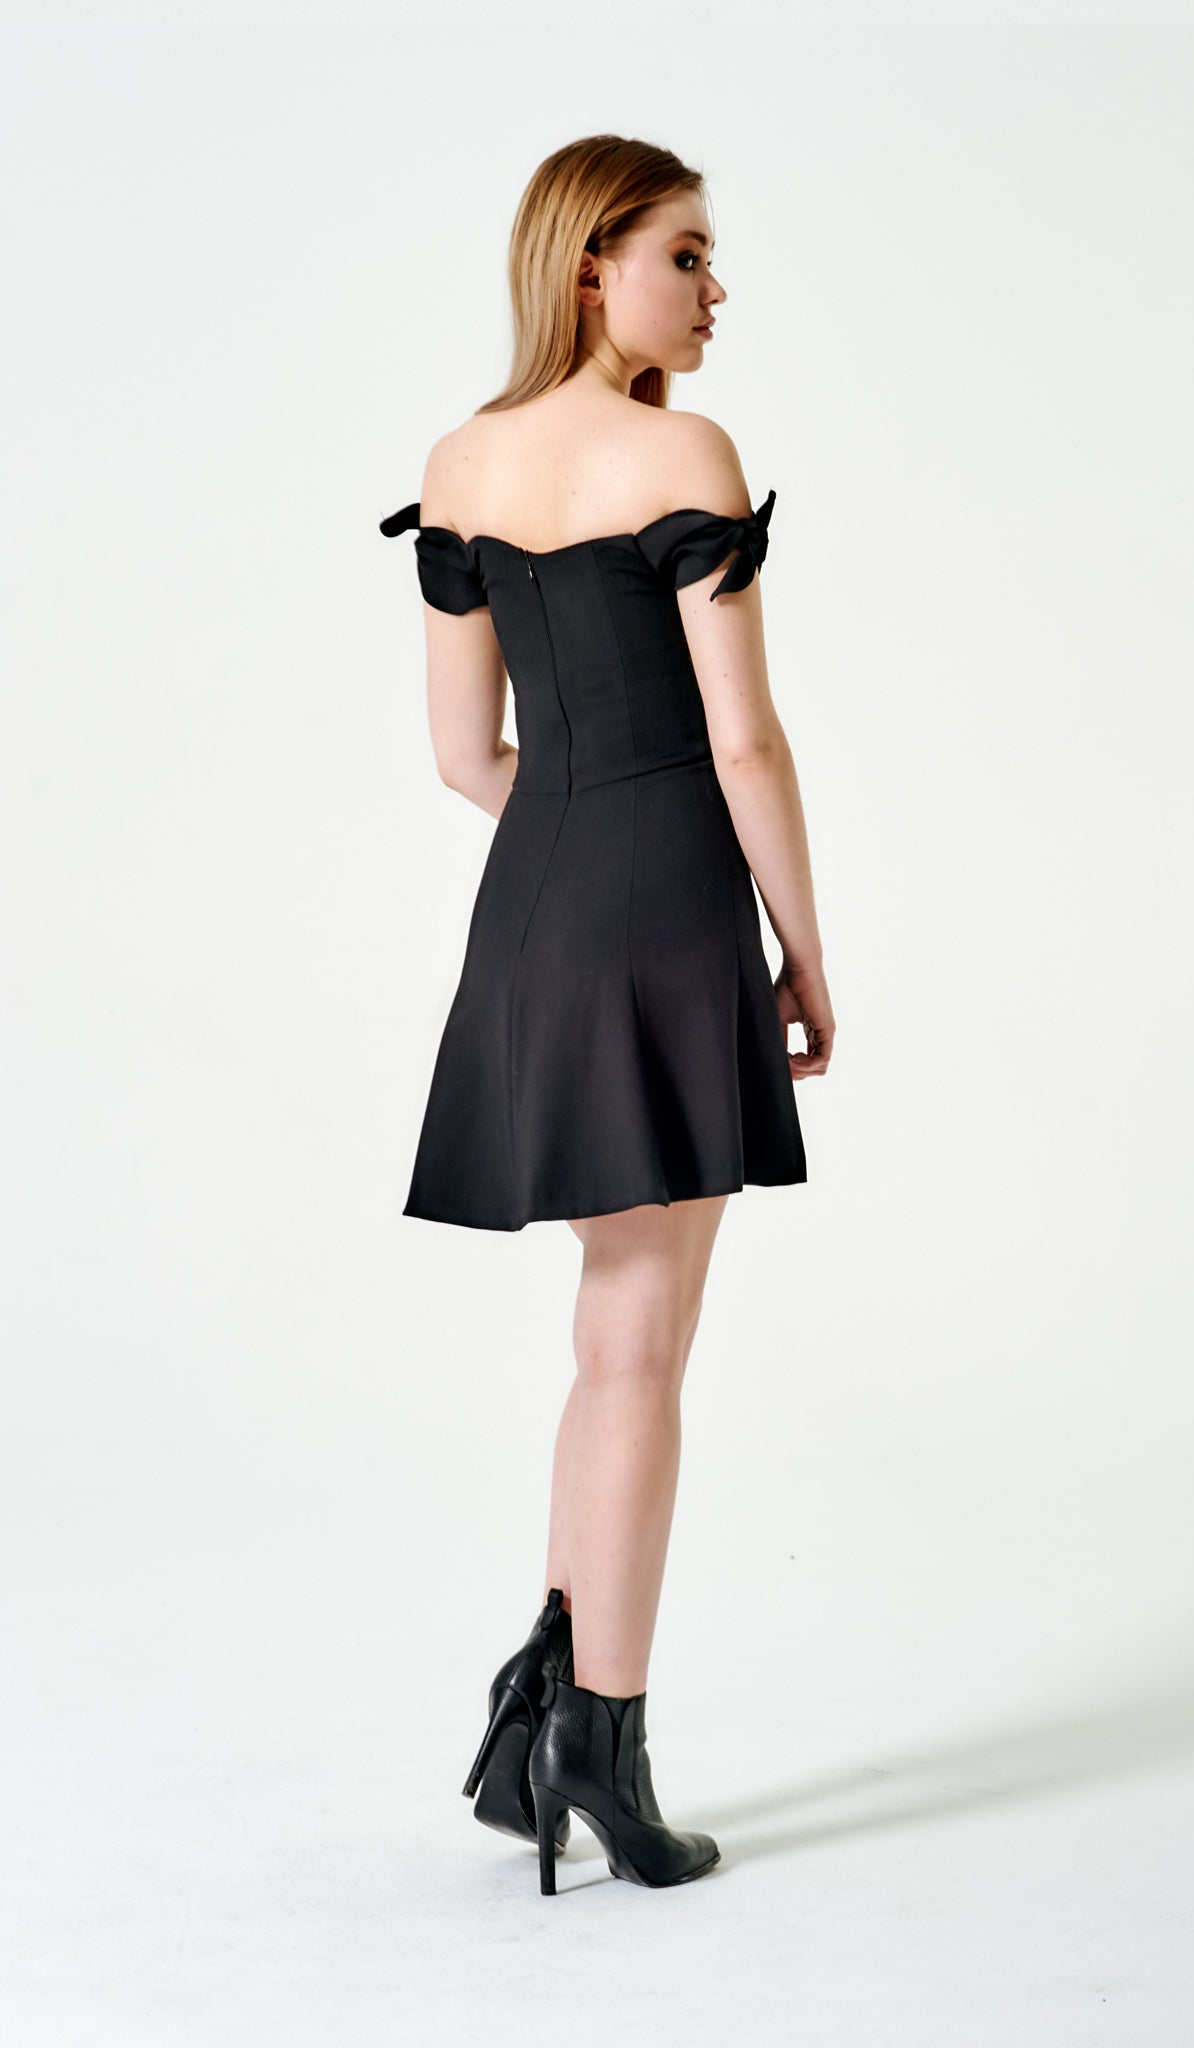 THE SIMONE DRESS  - SMYC1148